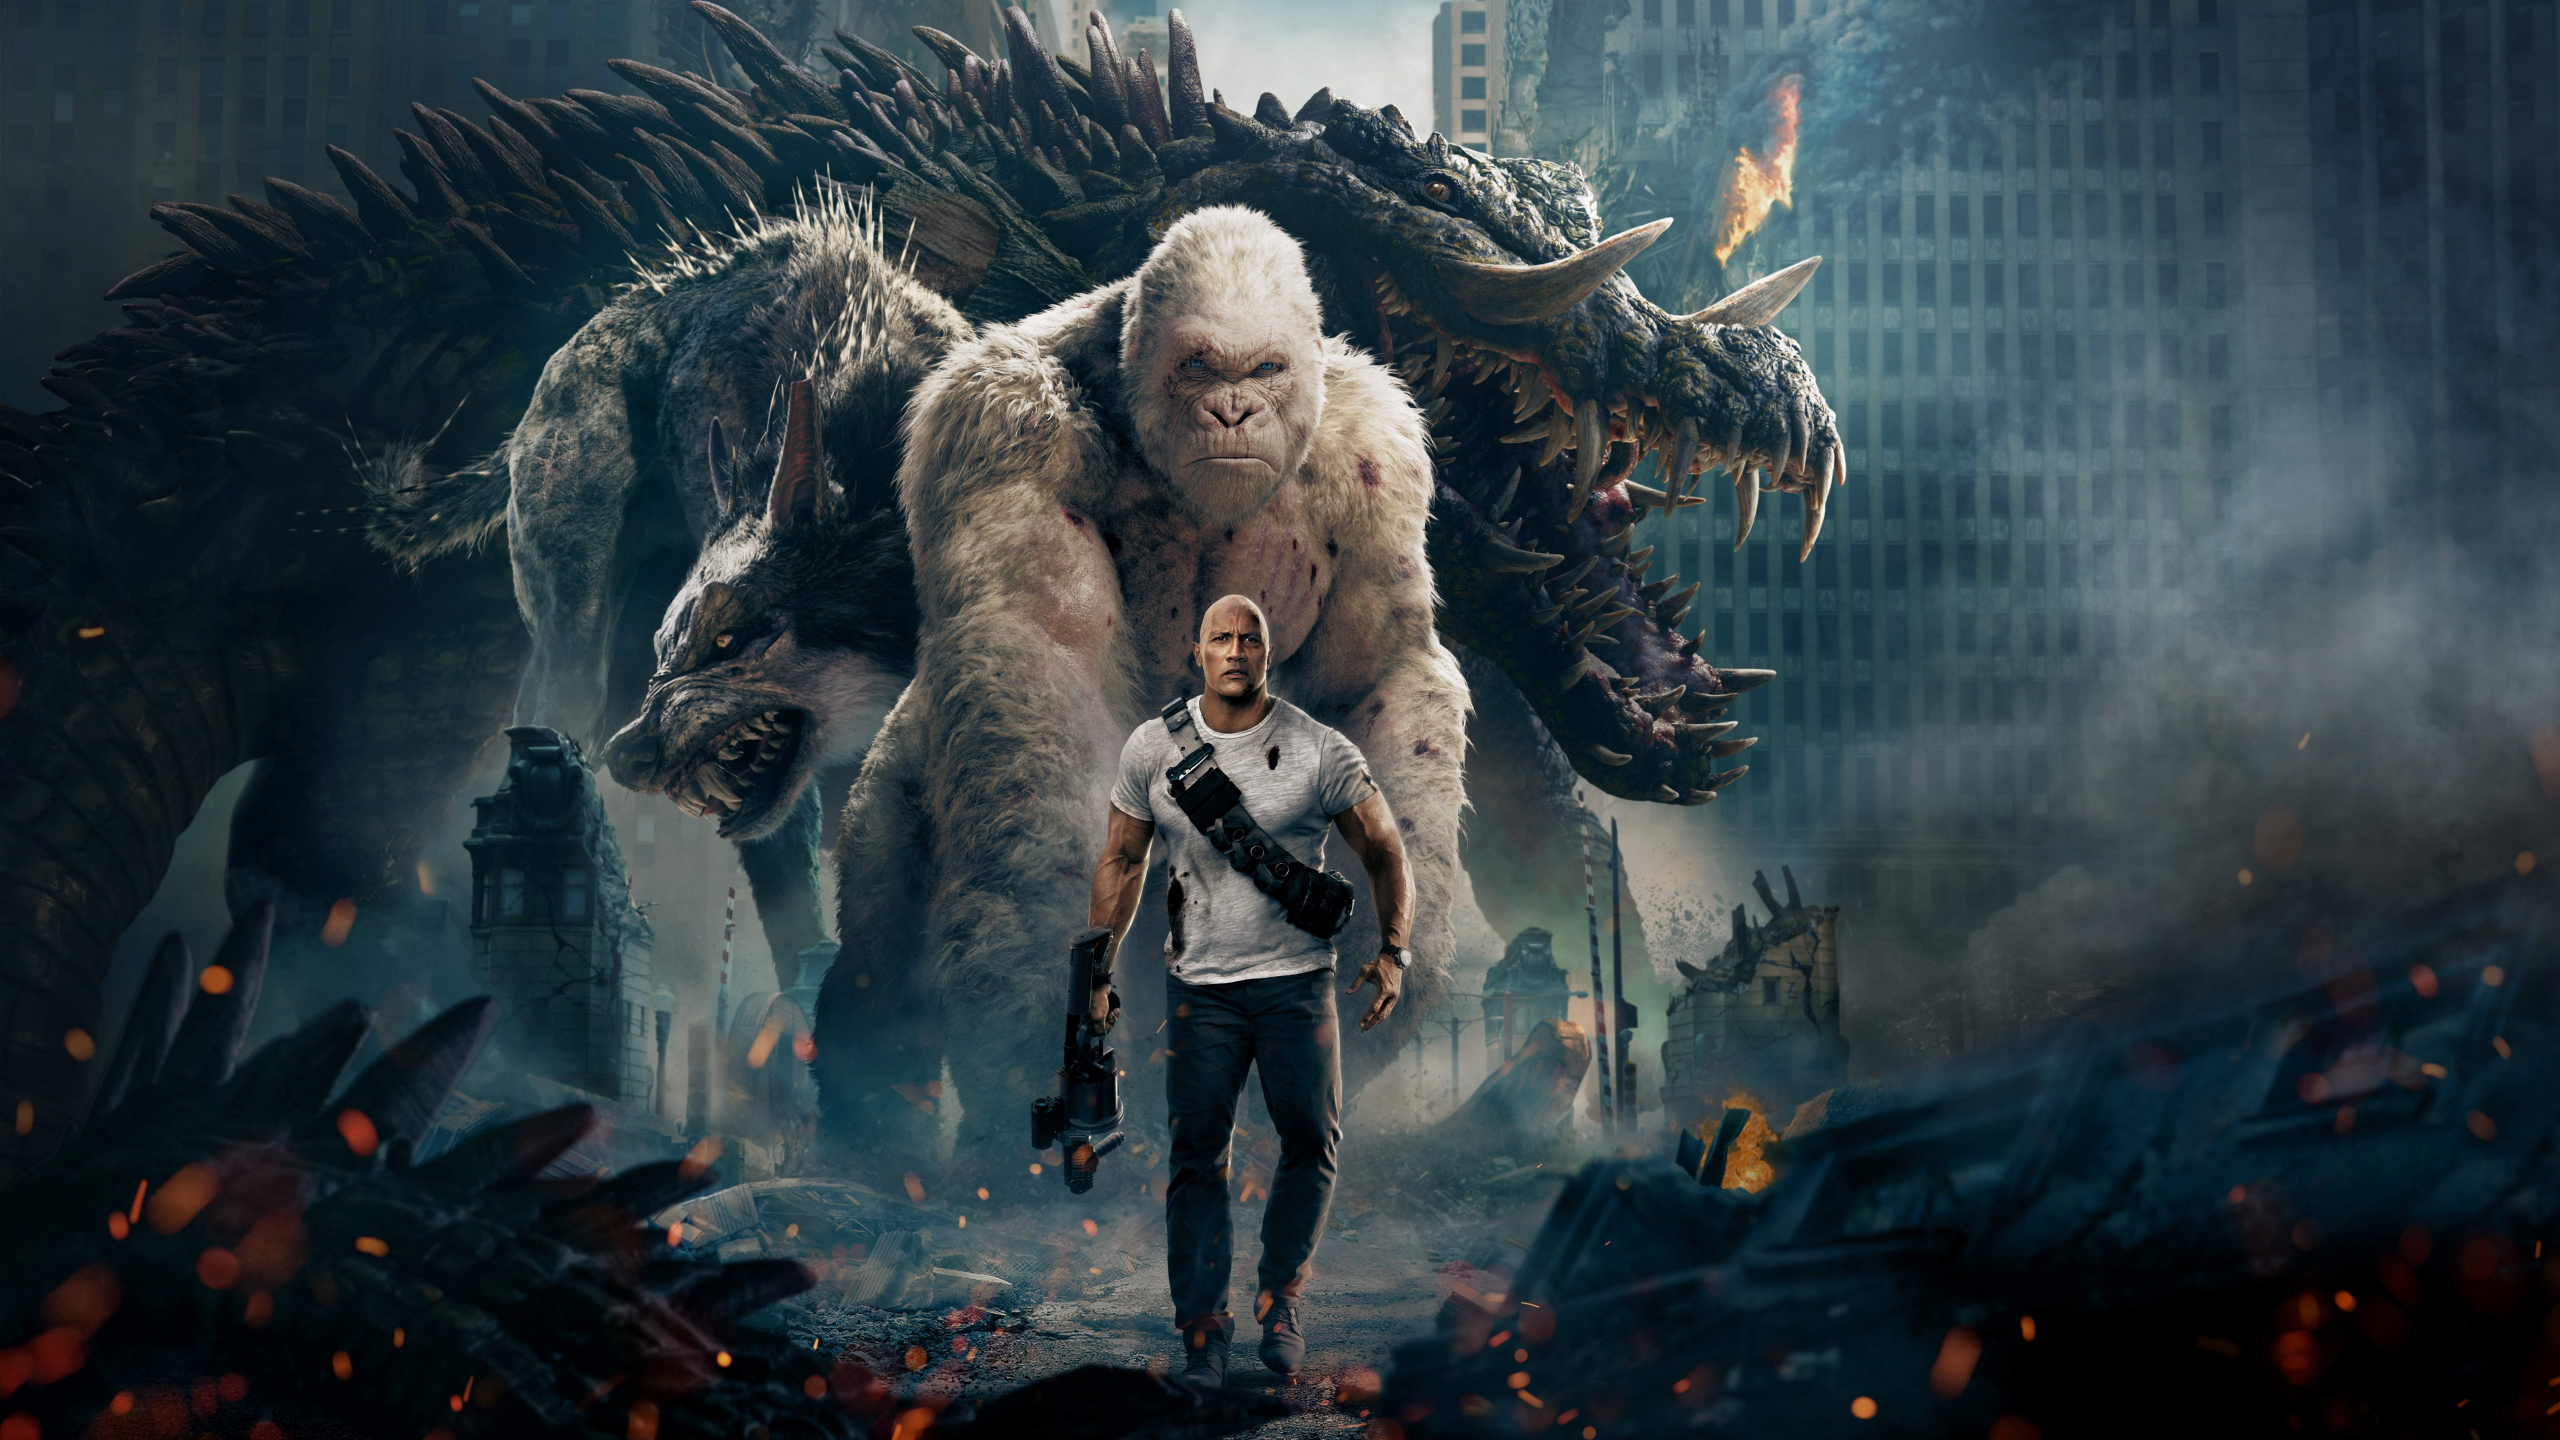 Download 2560x1440 Wallpaper Movie Rampage 2018 Official Poster Dual Wide Widescreen 16 9 Widescreen 2560x1440 Hd Image Background 5701